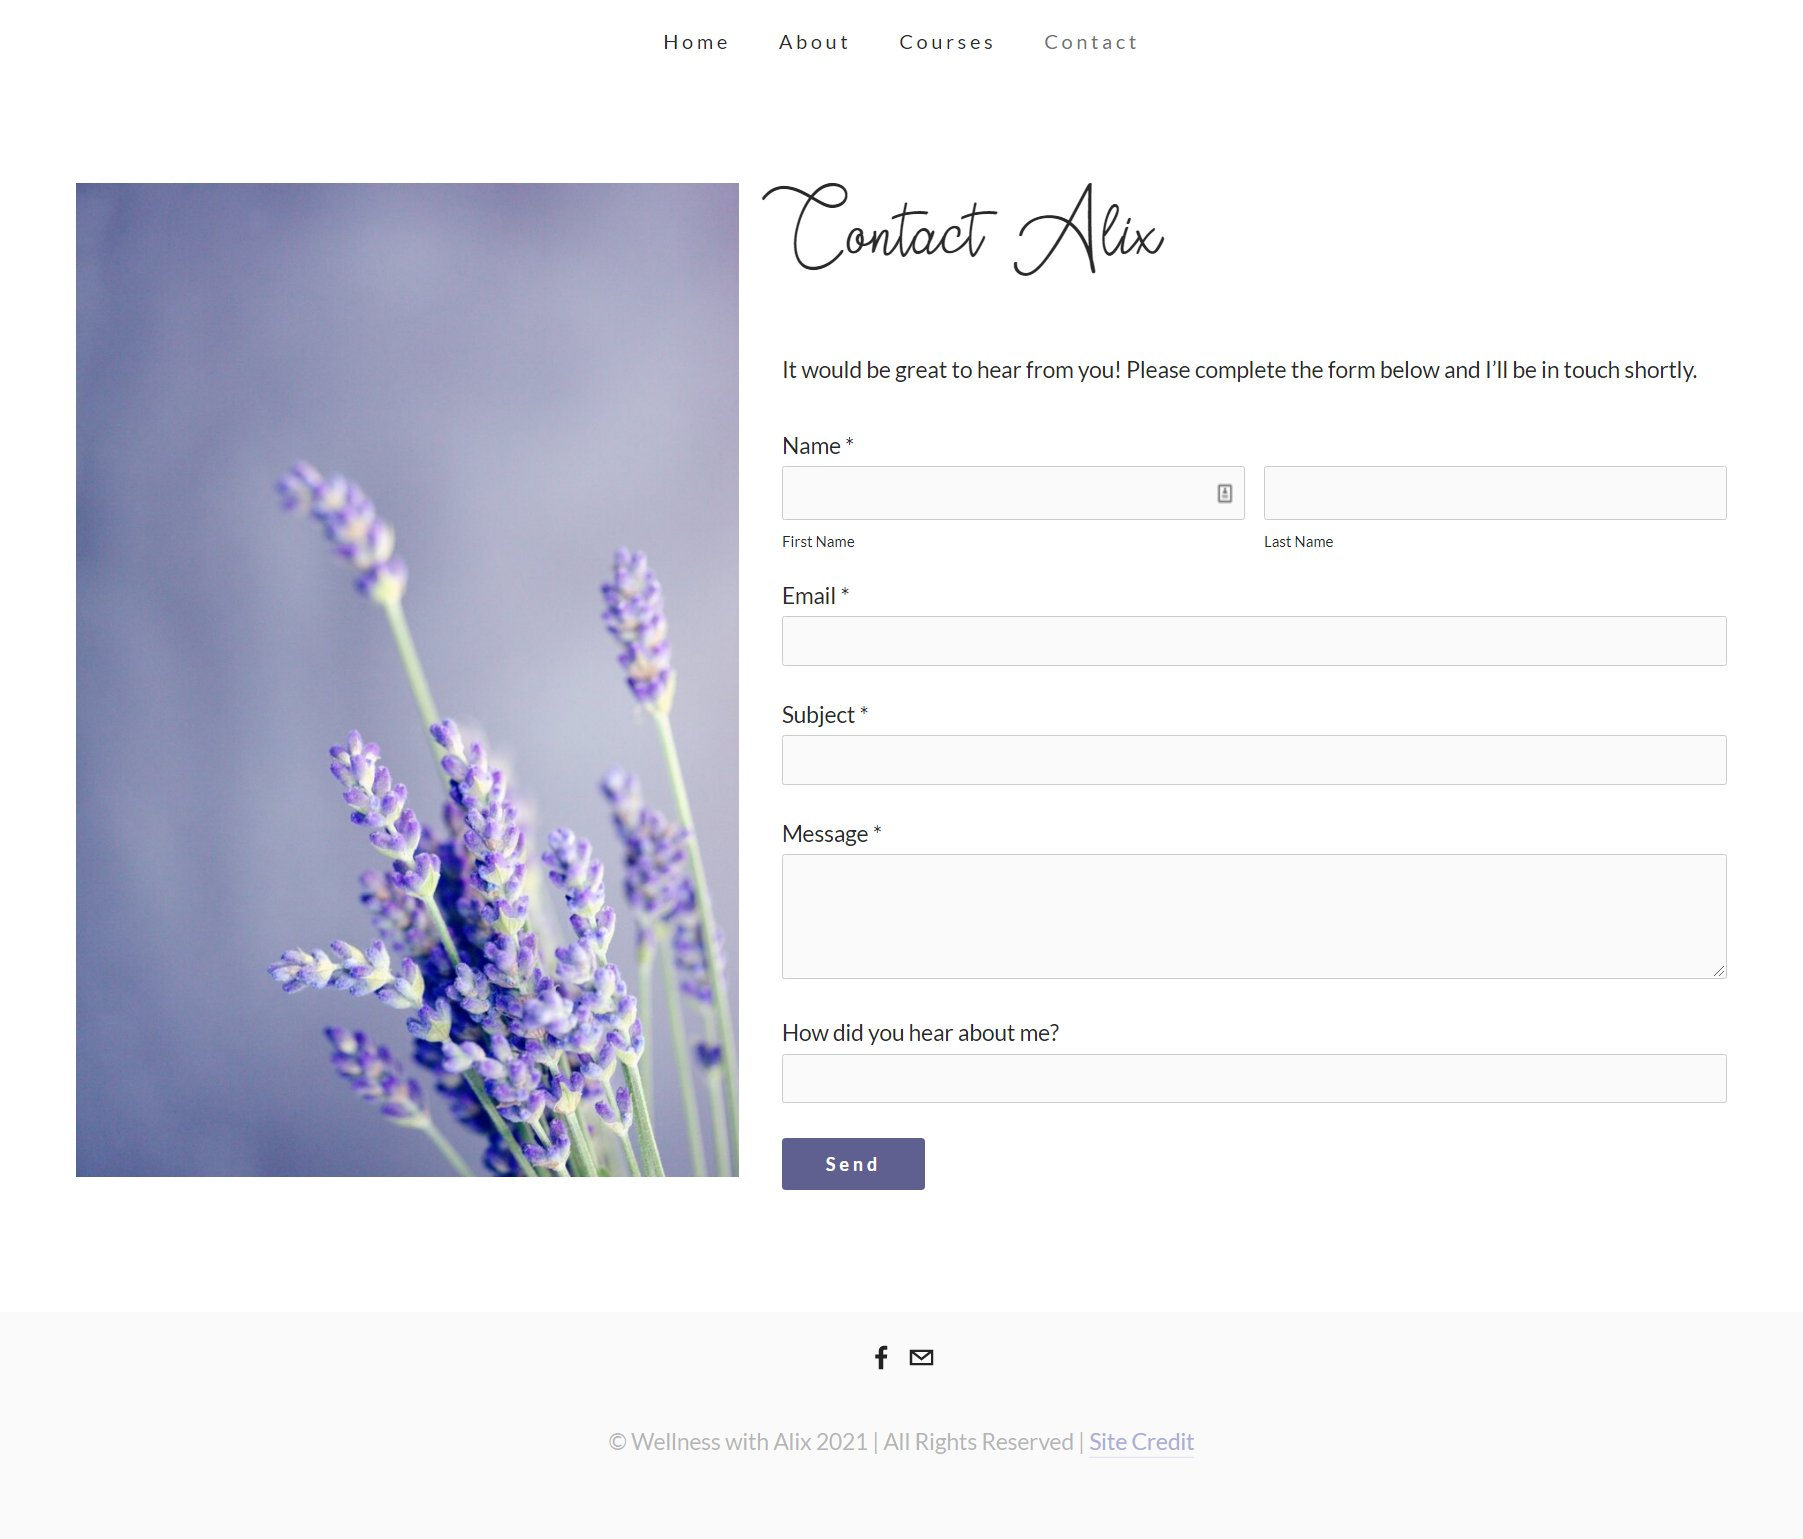 Wellness with Alix Contact Page